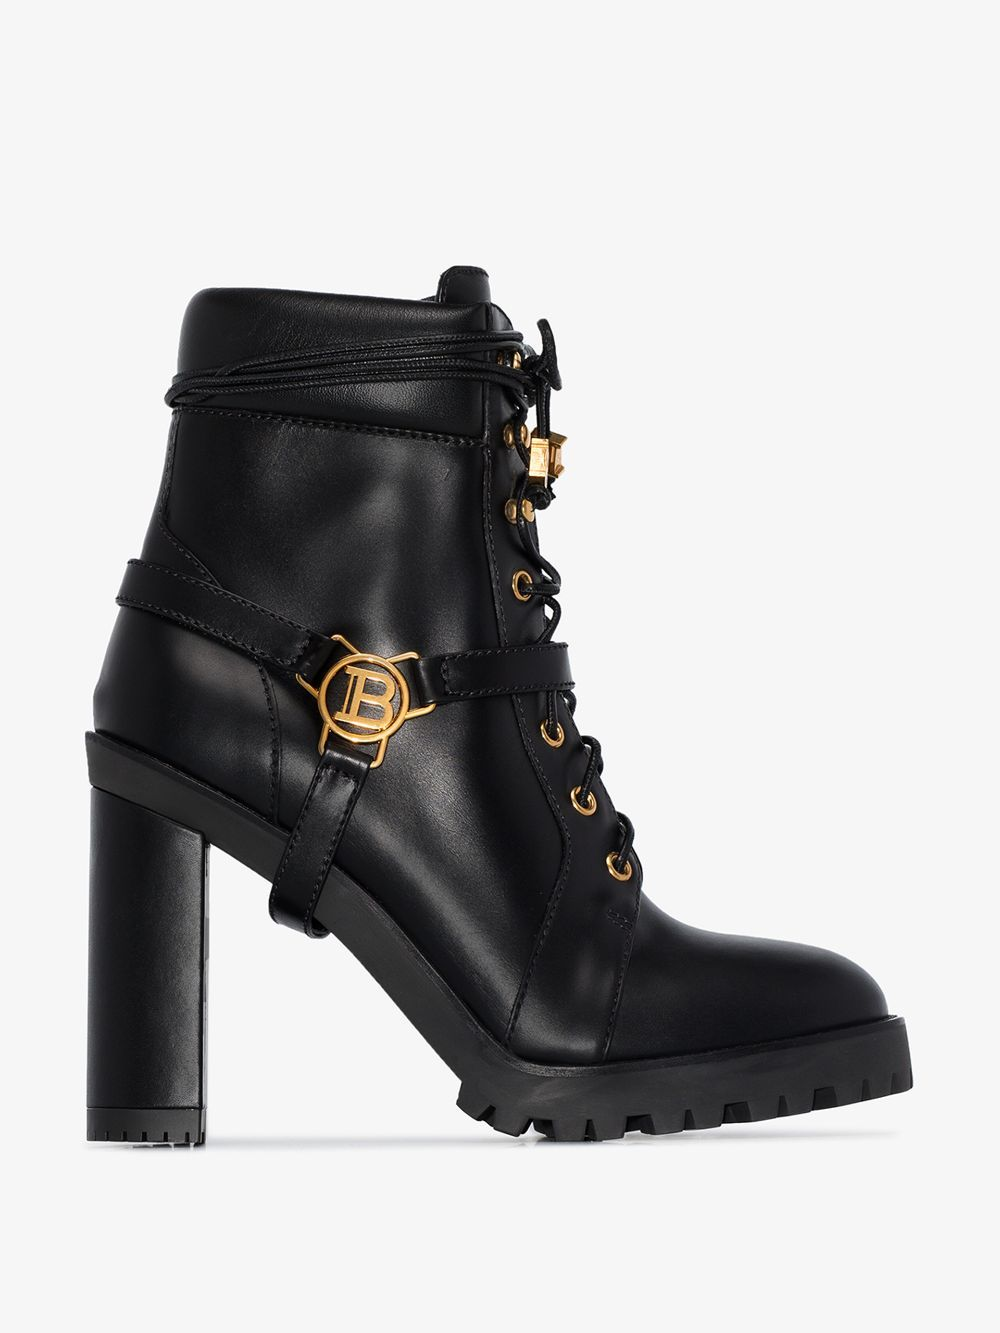 Balmain boots, Boots, Brown ankle boots